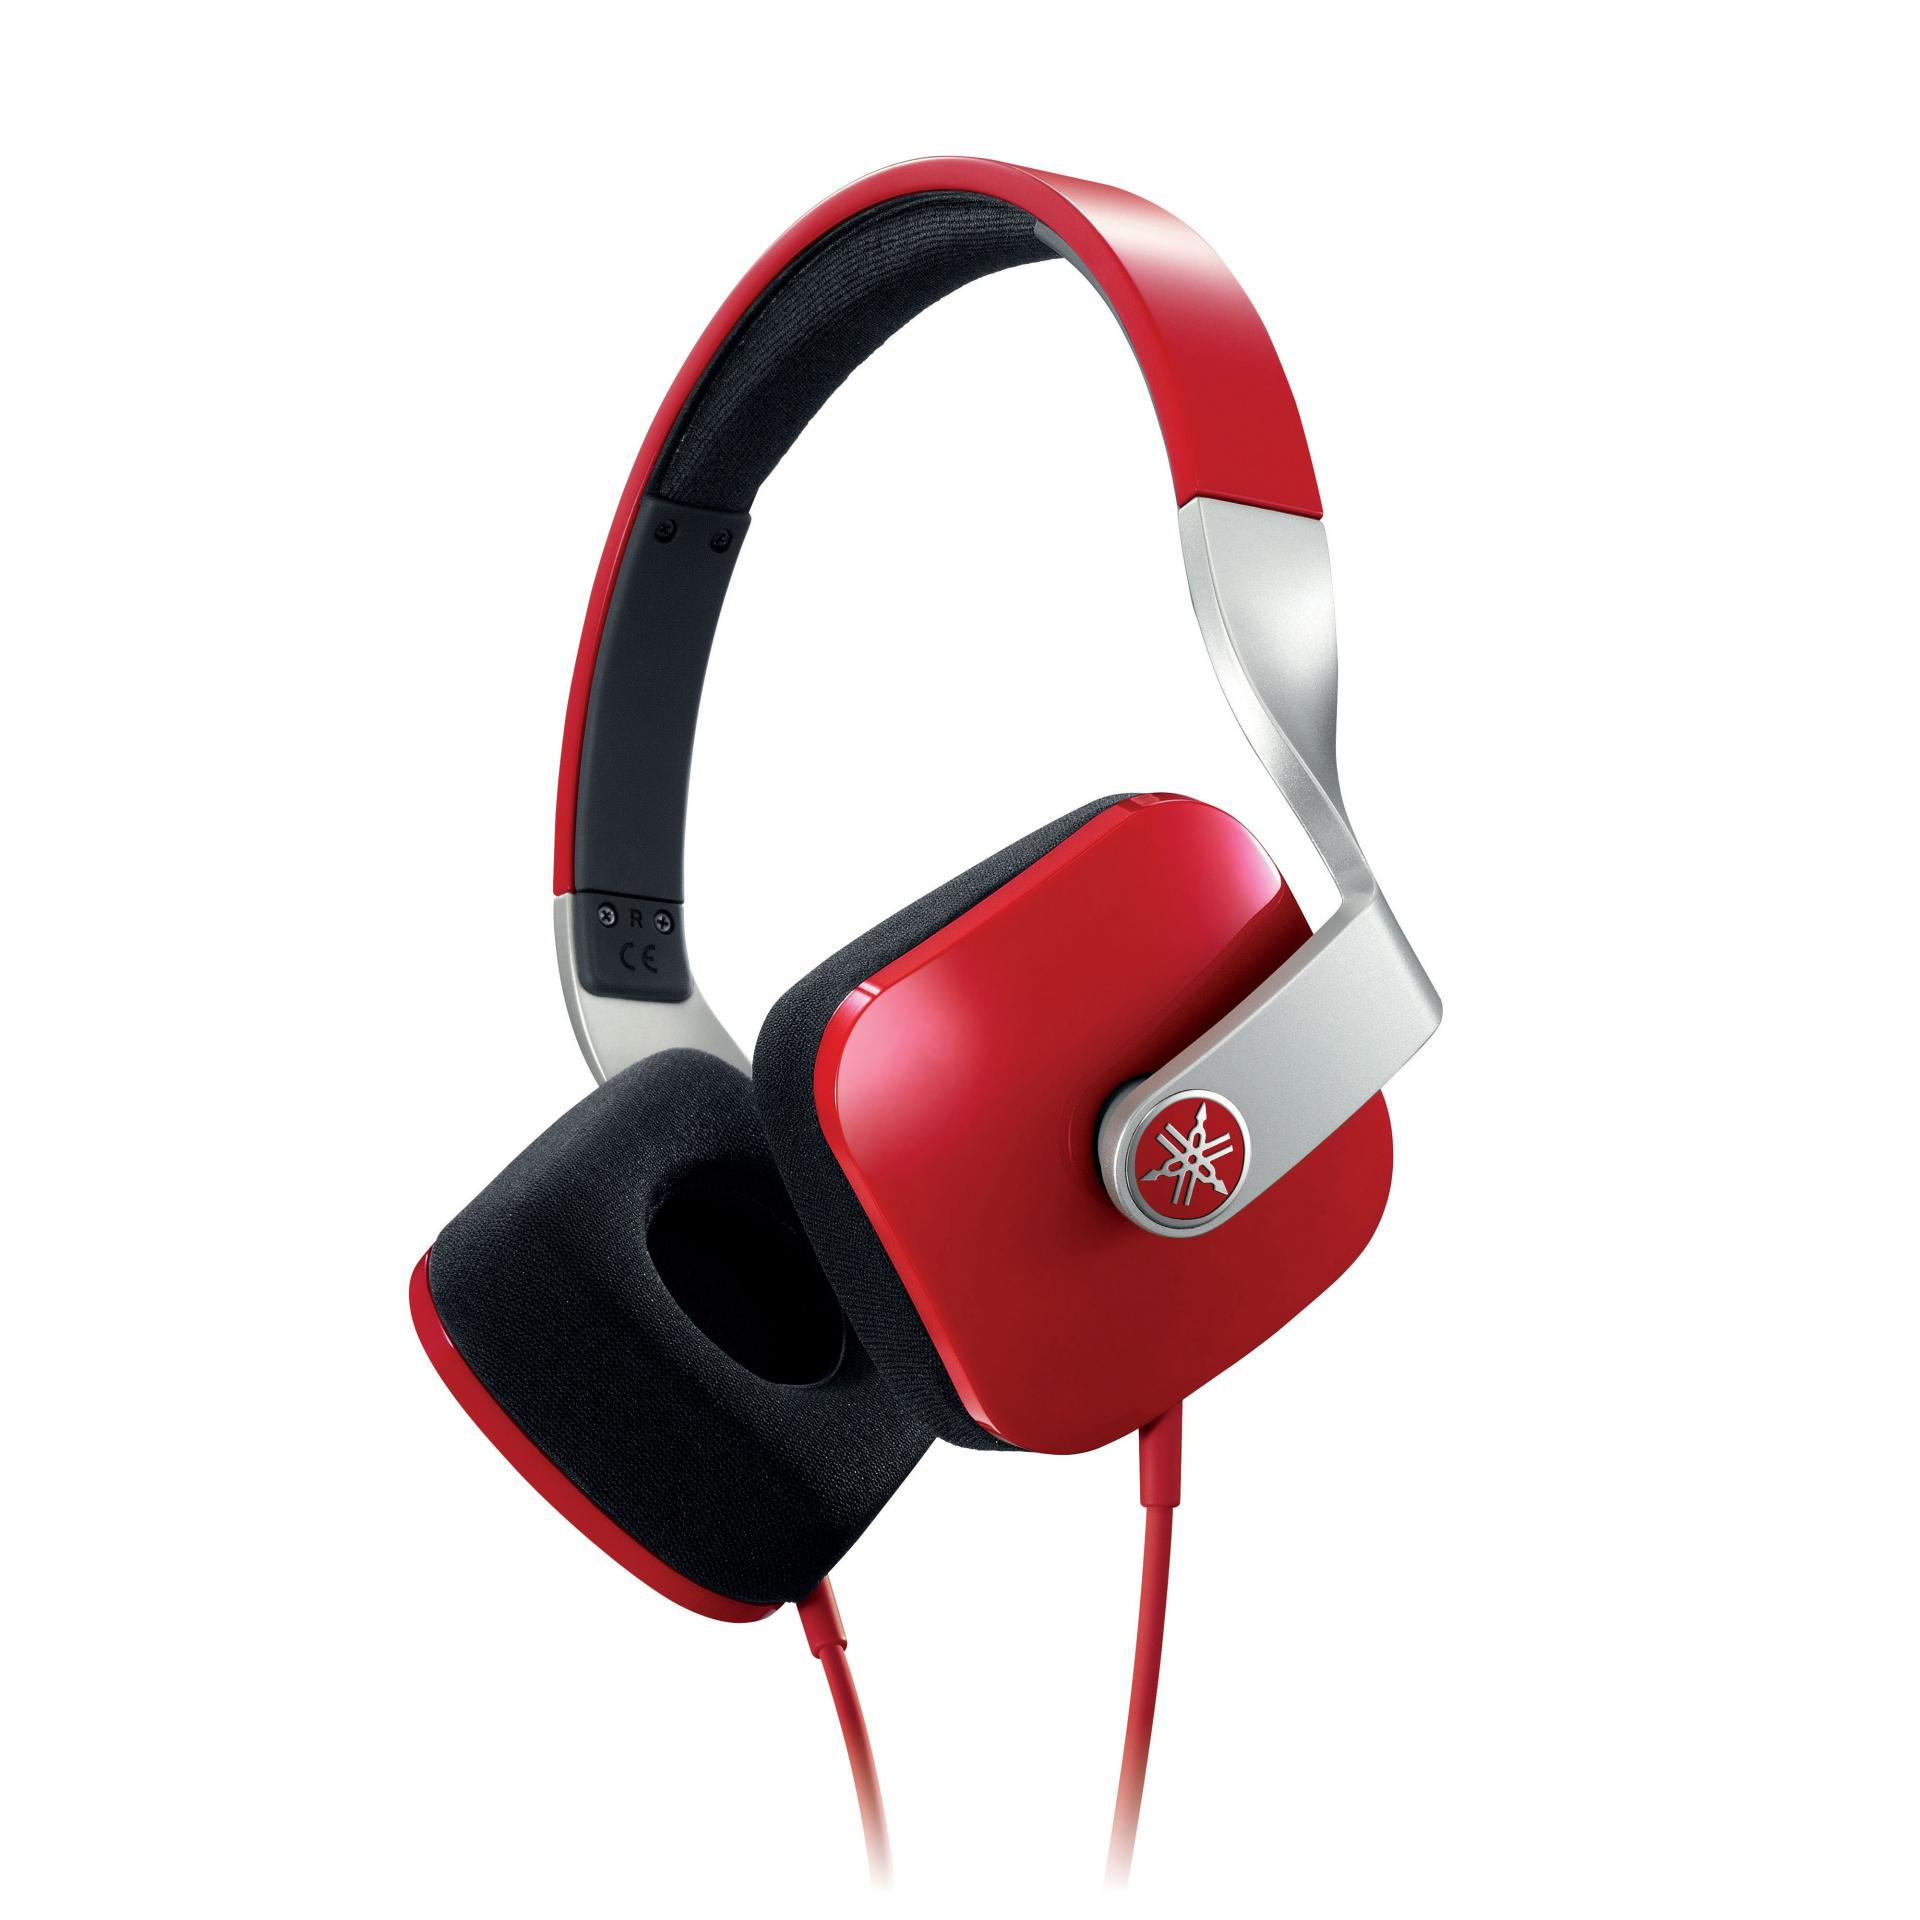 Hphm82 red